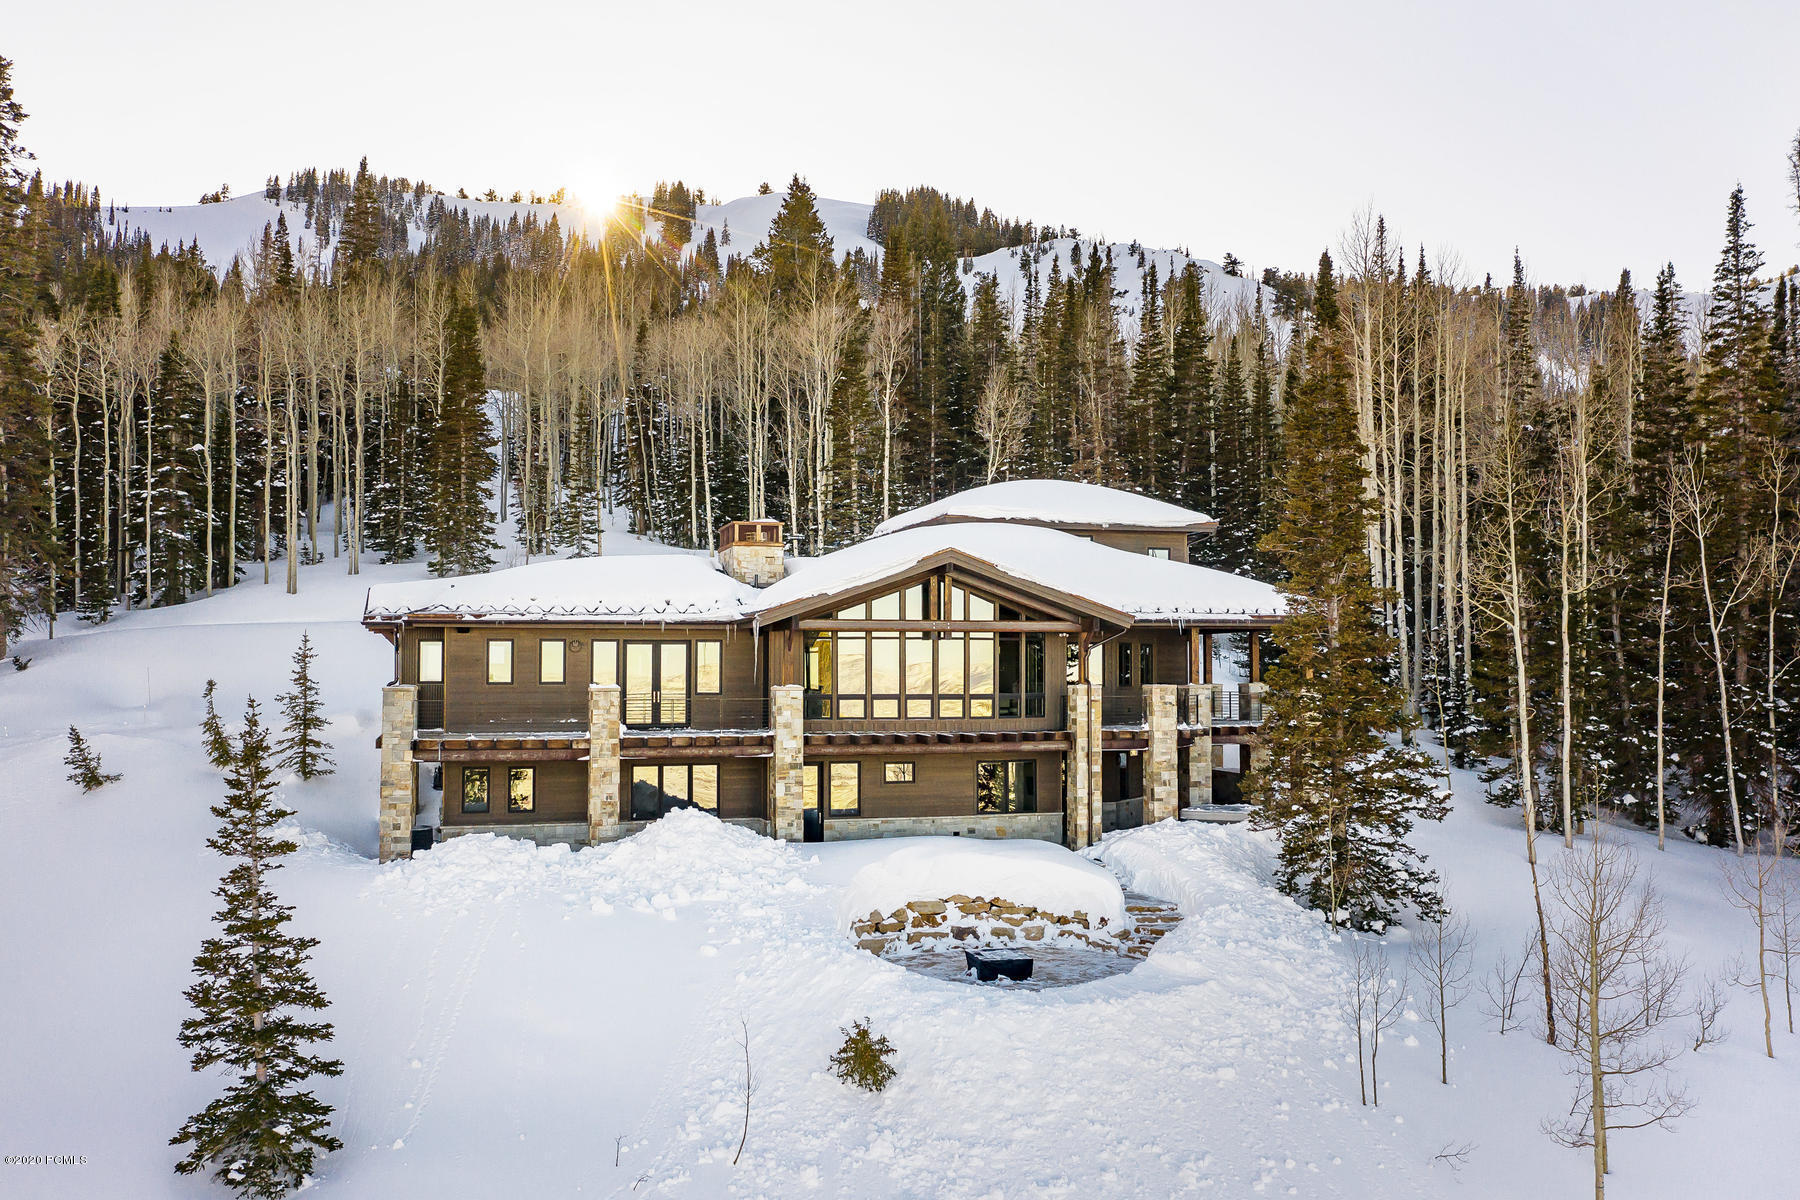 124 White Pine Canyon Road, Park City, Utah 84060, 5 Bedrooms Bedrooms, ,7 BathroomsBathrooms,Single Family,For Sale,White Pine Canyon,20190109112430415765000000